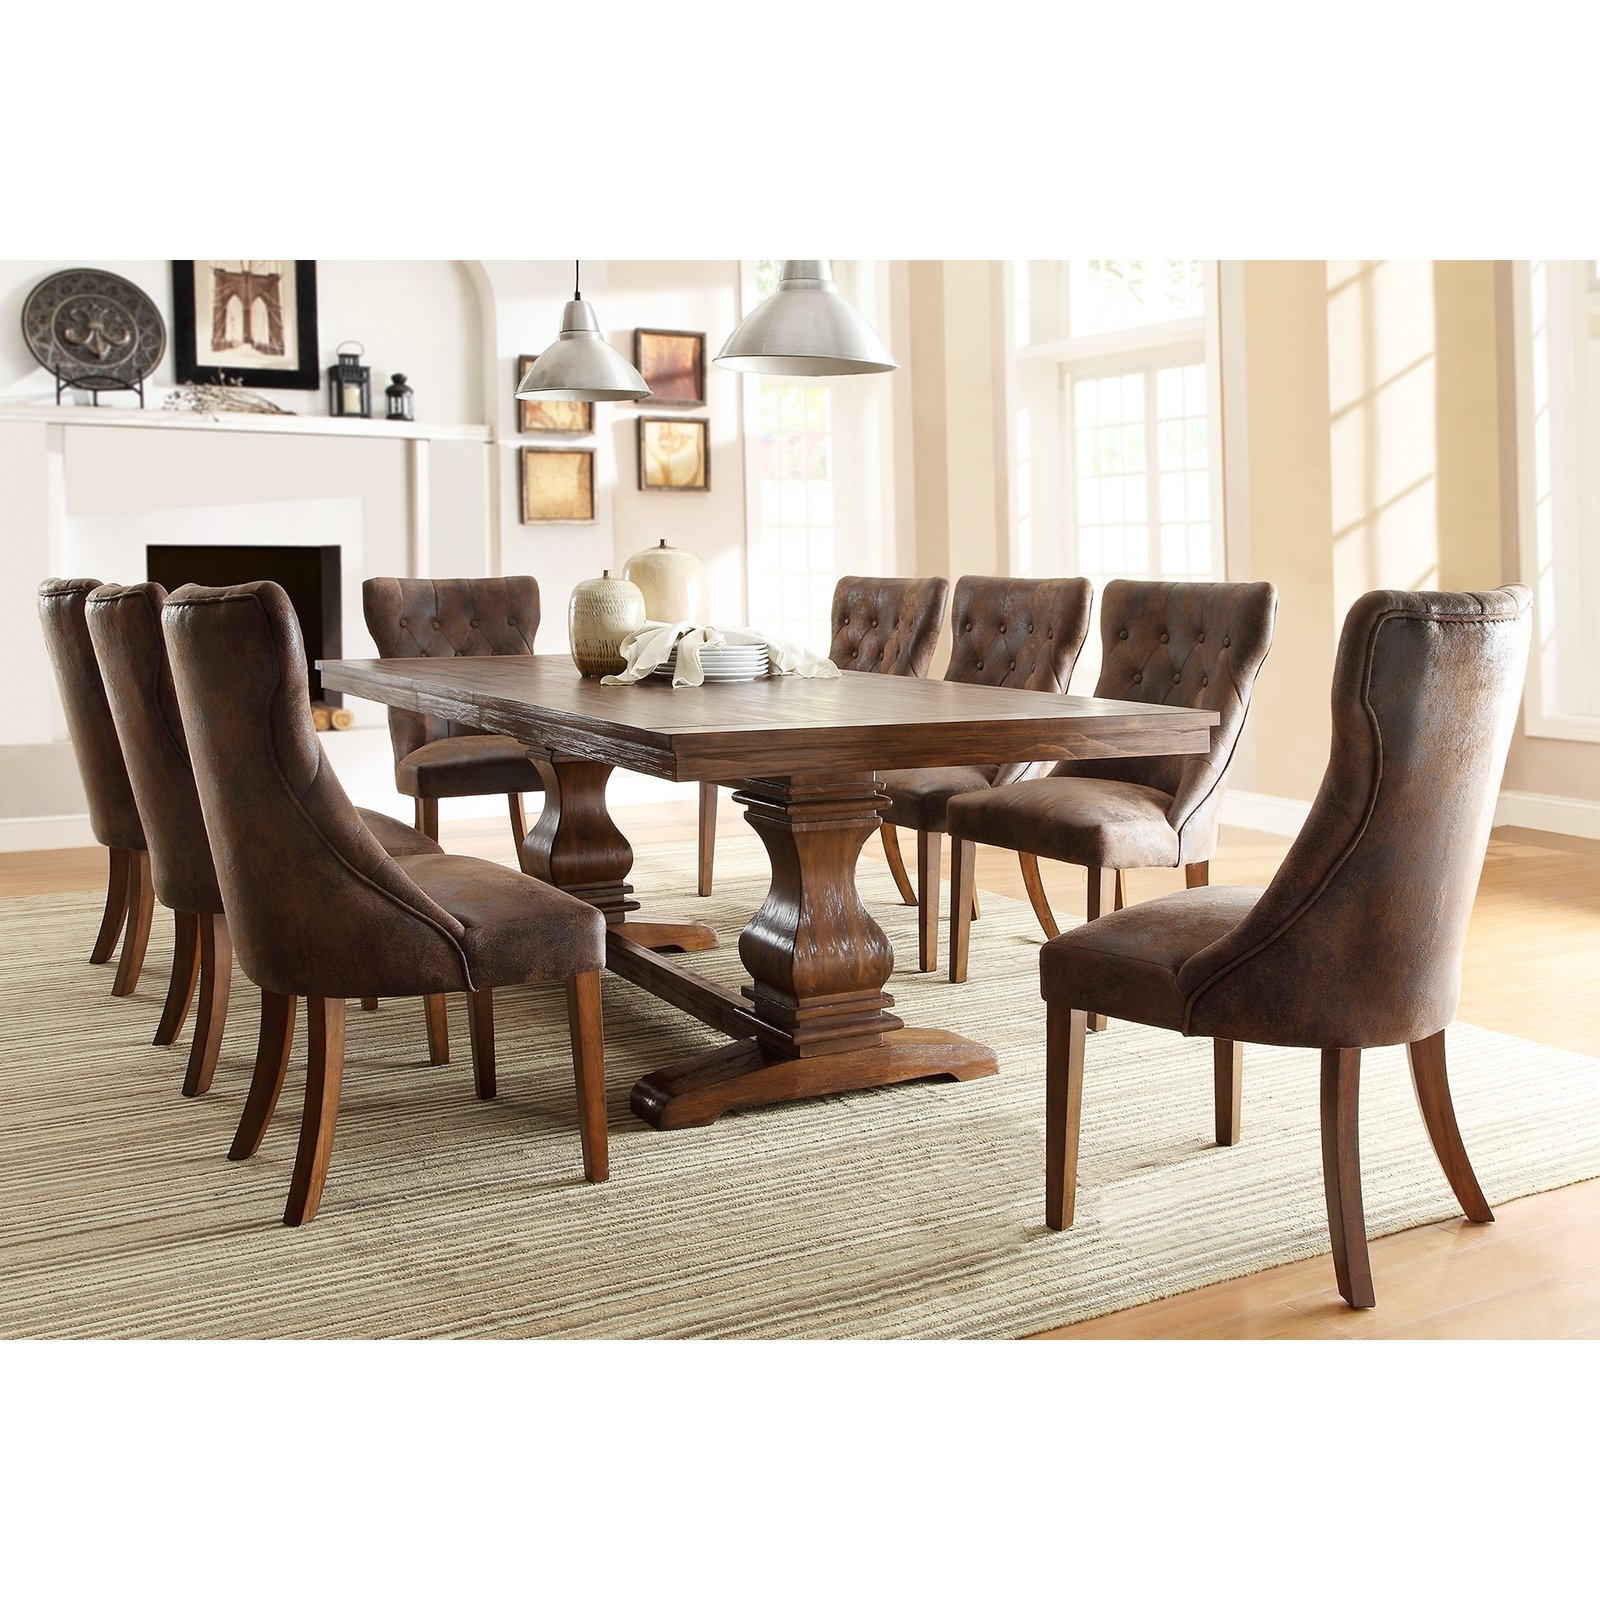 Oak Dining Tables Sets Inside Most Recent Weston Home Marie Louise 9 Piece Expandable Trestle Dining Table Set (View 16 of 25)